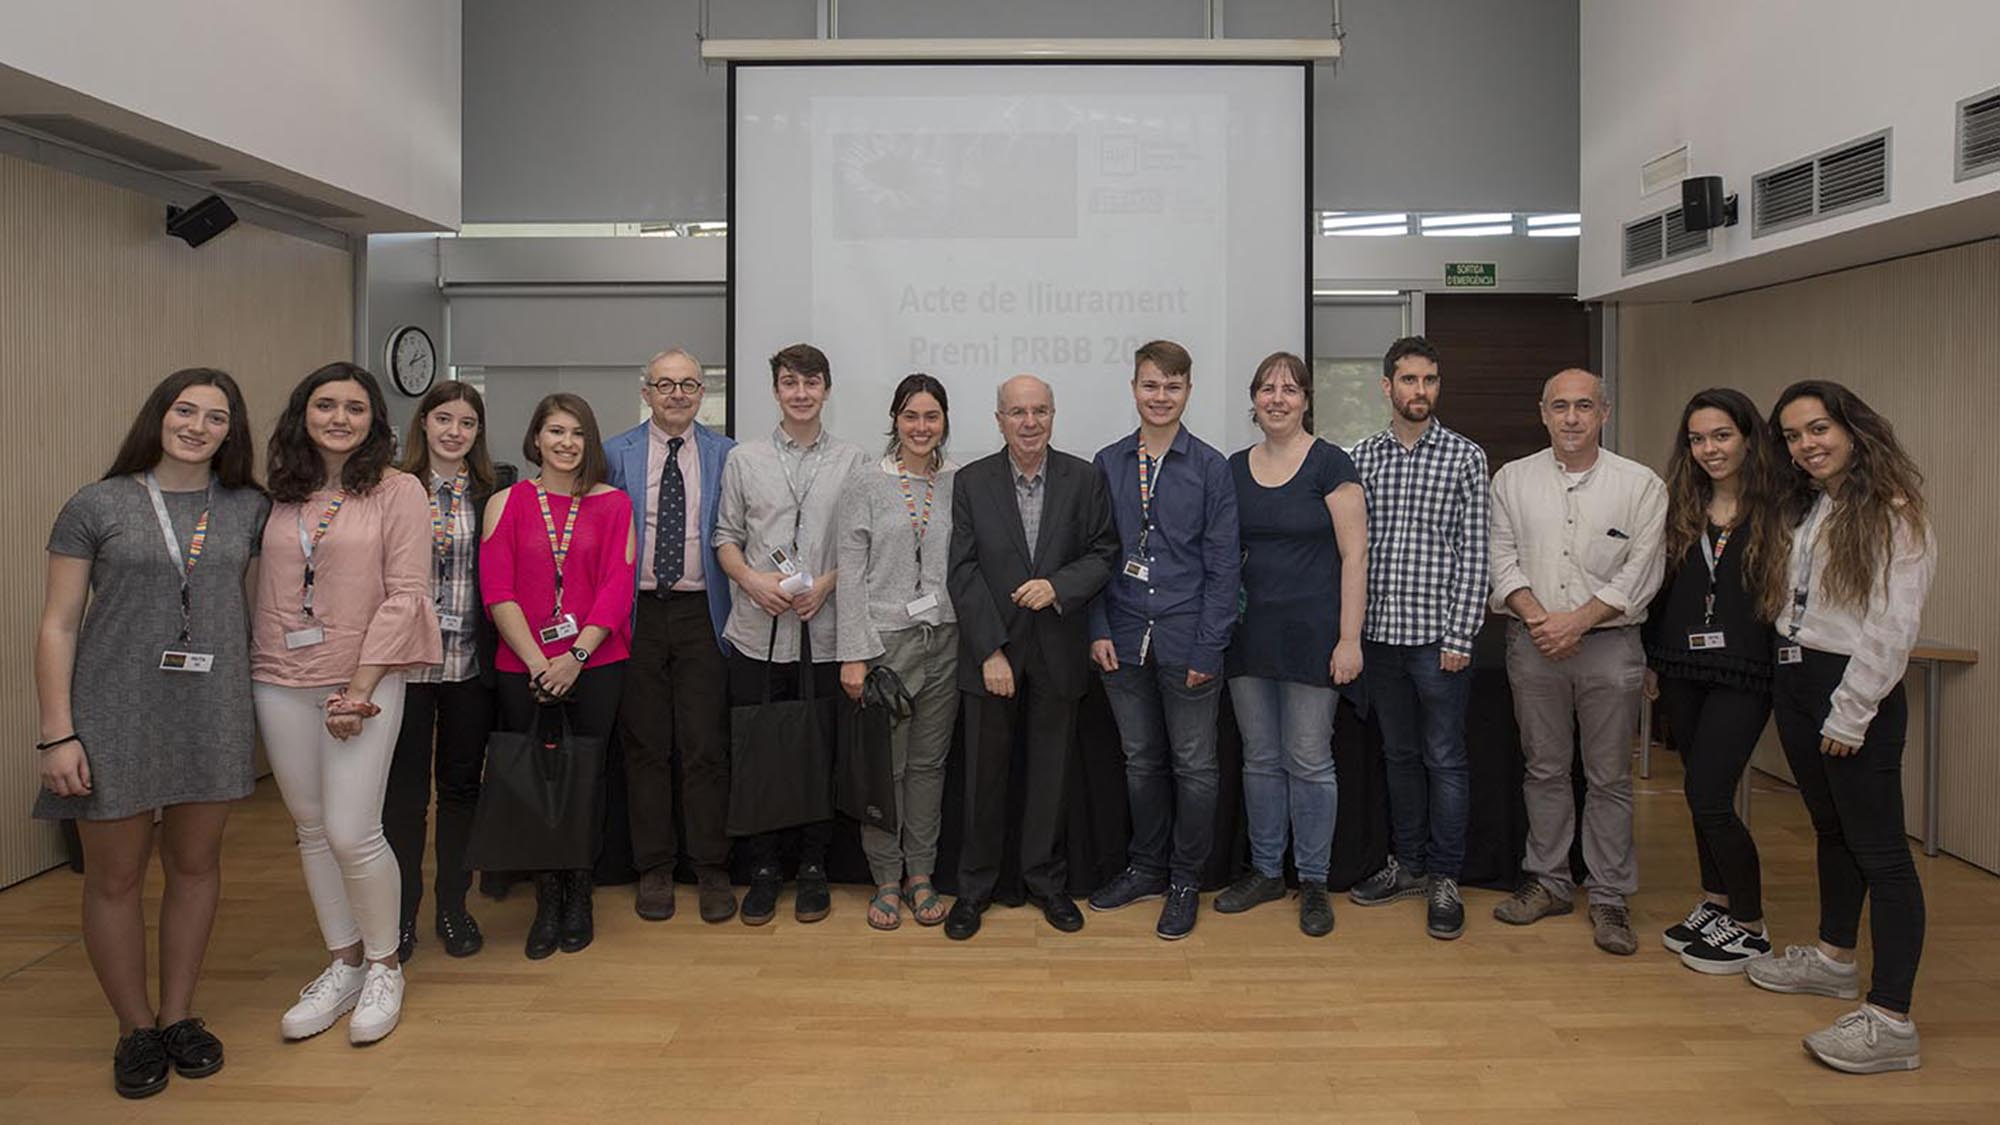 Awardees and jury of the PRBB Prize